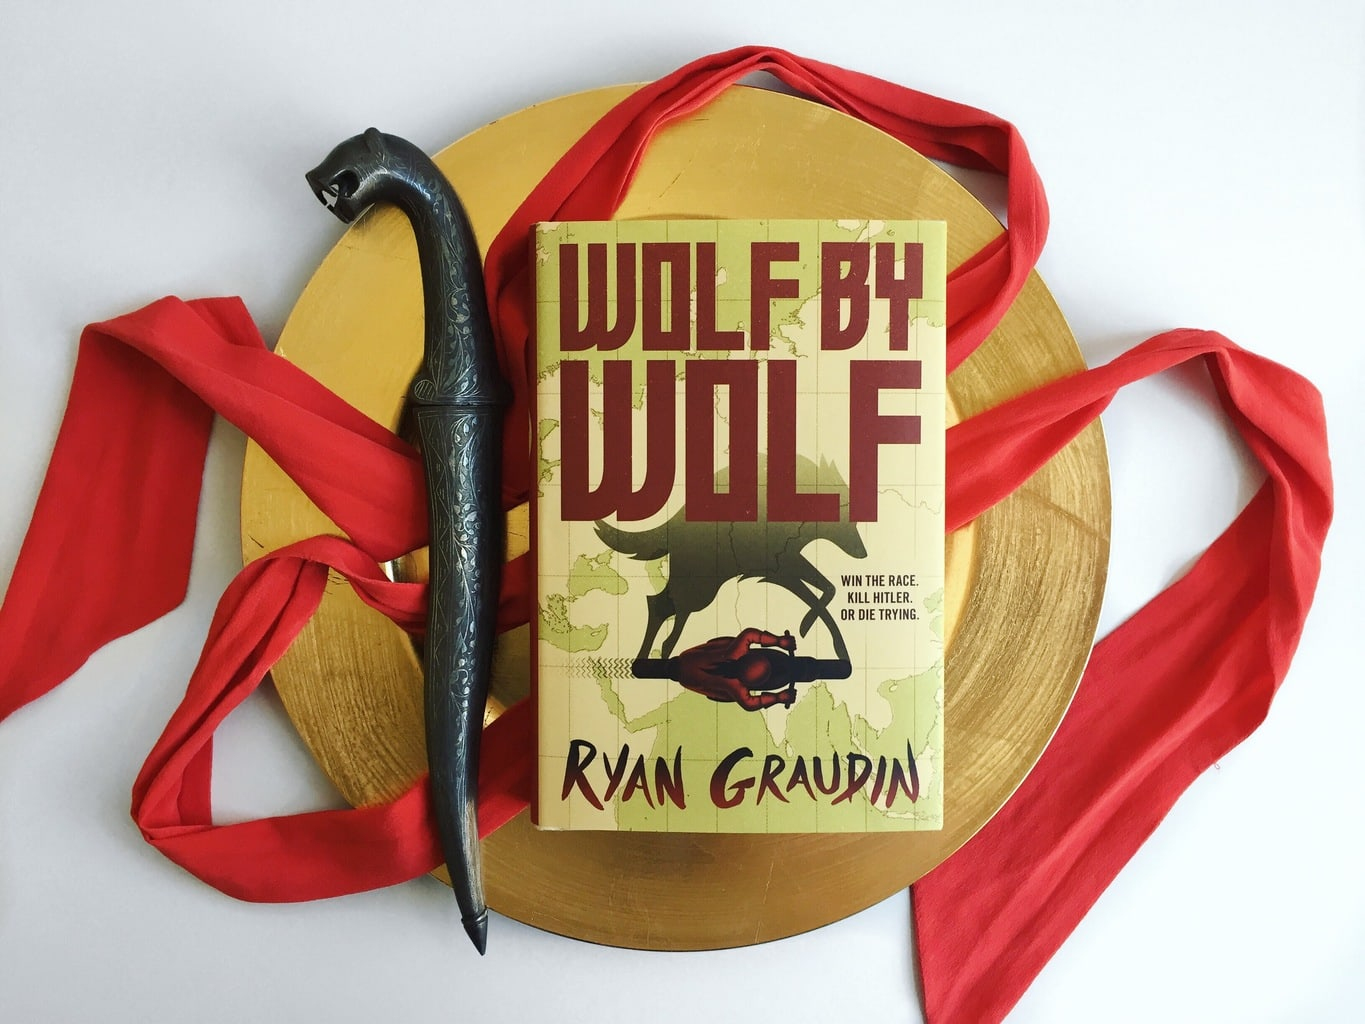 Wolf by Wolf: Mad Max Fury Road meets Axis Powers Road Race in 1956